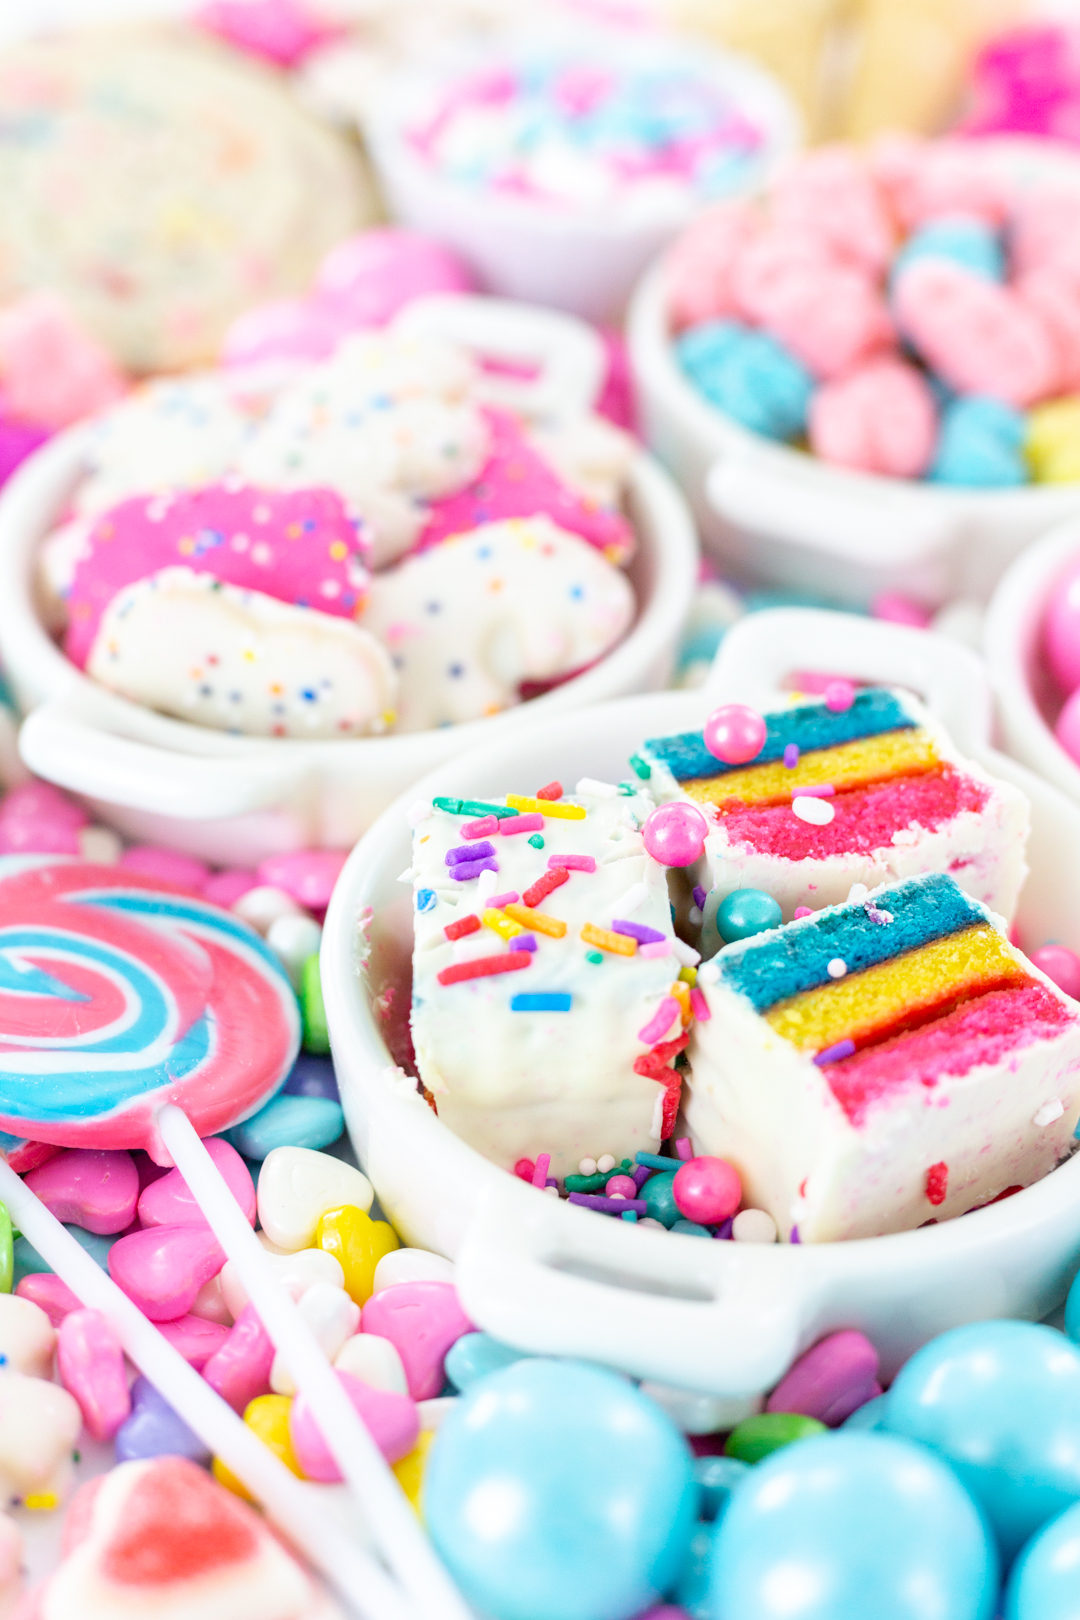 birthday platter with pretty colored cakes and candies